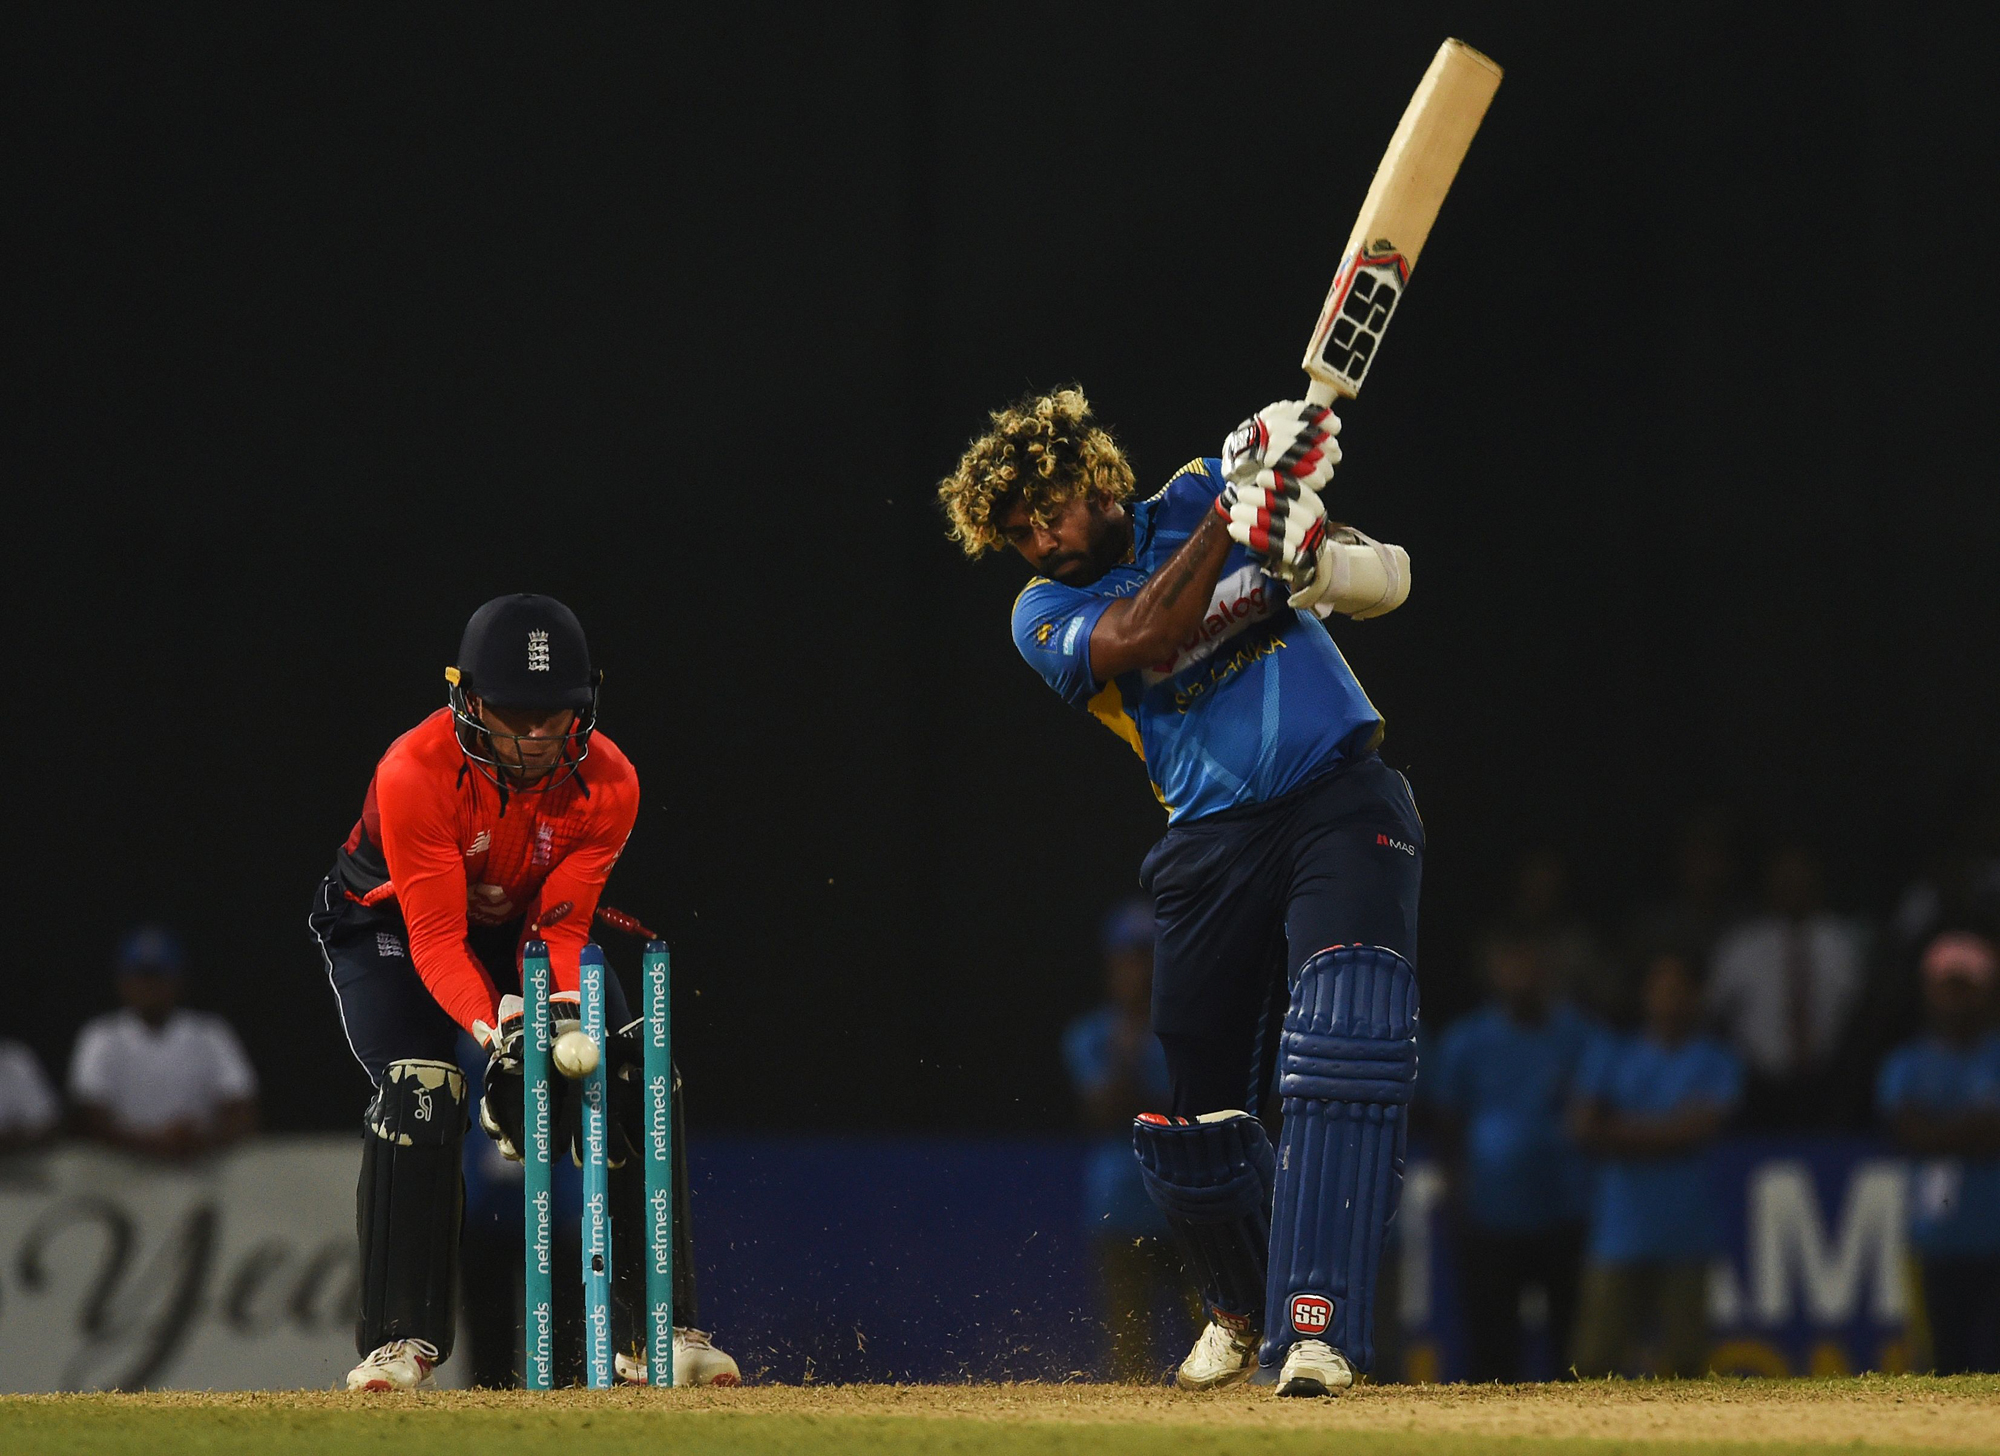 Sri Lankan cricketer Lasith Malinga (R) is dismissed as England wicket keeper Jos Buttler (L) looks on during the Twenty20 International cricket match between Sri Lanka and England at the R. Premadasa Stadium in Colombo on October 27, 2018. (Photo by ISHA